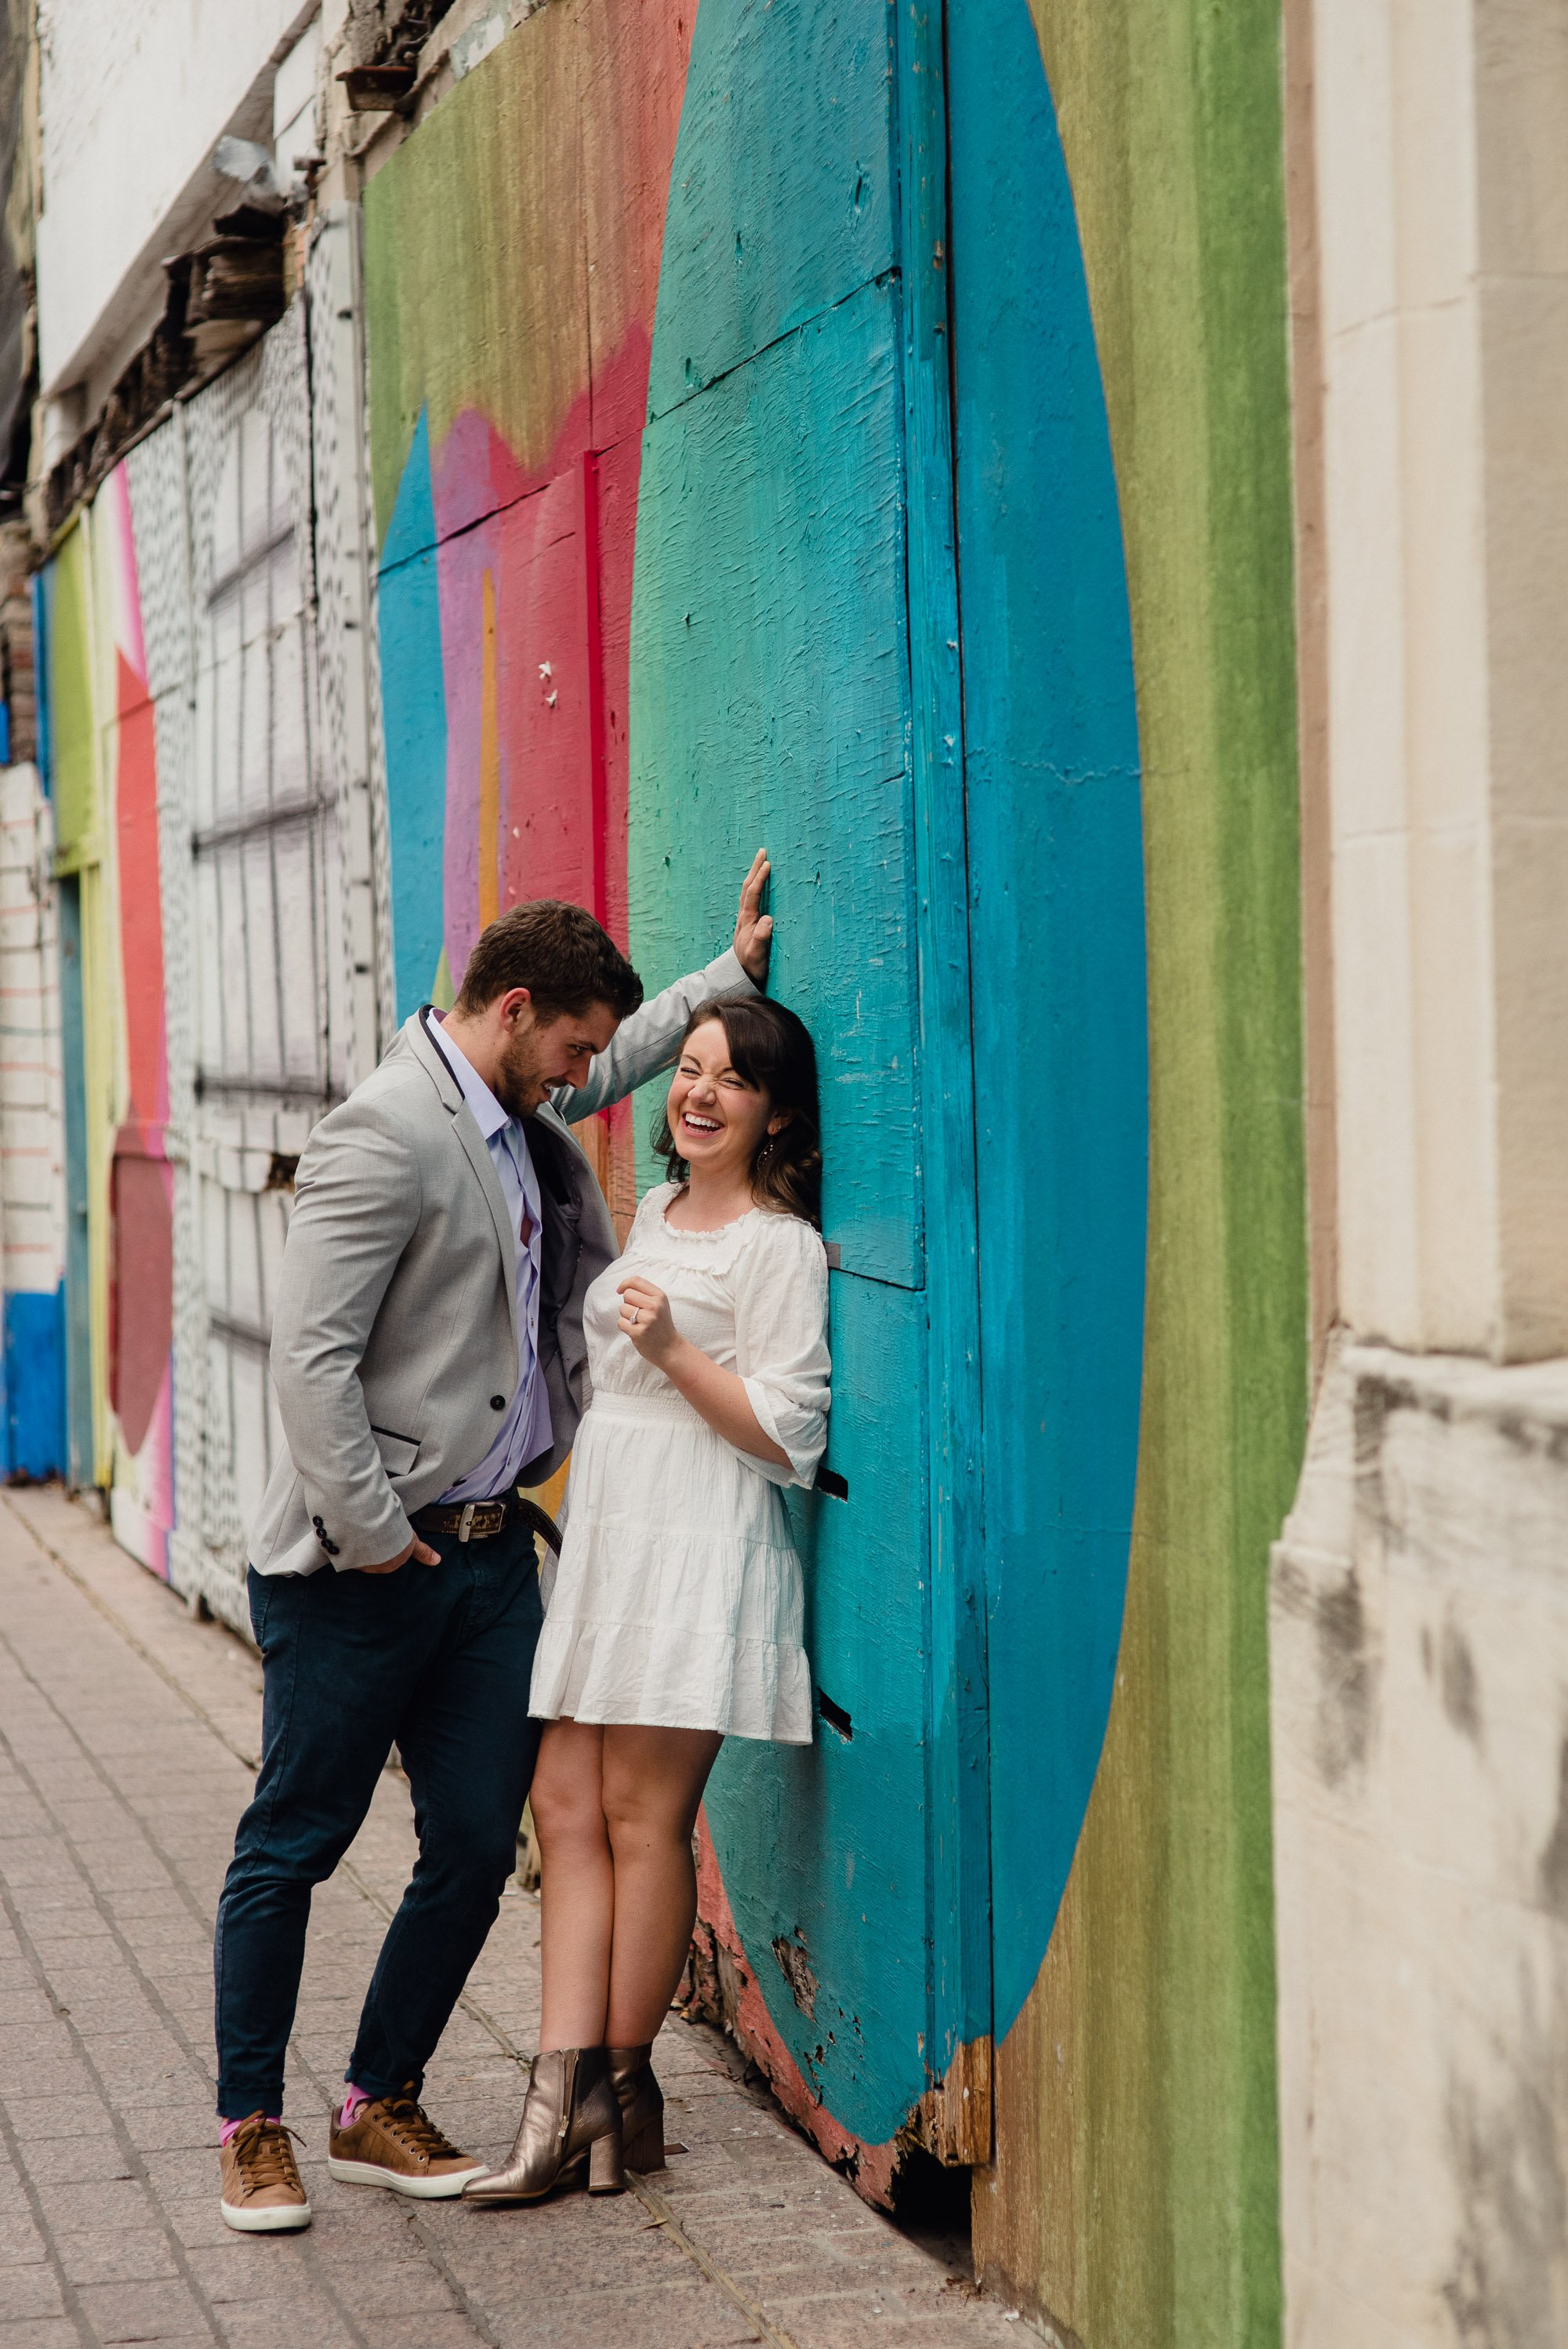 downtown austin proposal portraits, just engaged photos, she said yes, austin proposal photographer, professional austin proposal photos, proposals in downtown austin